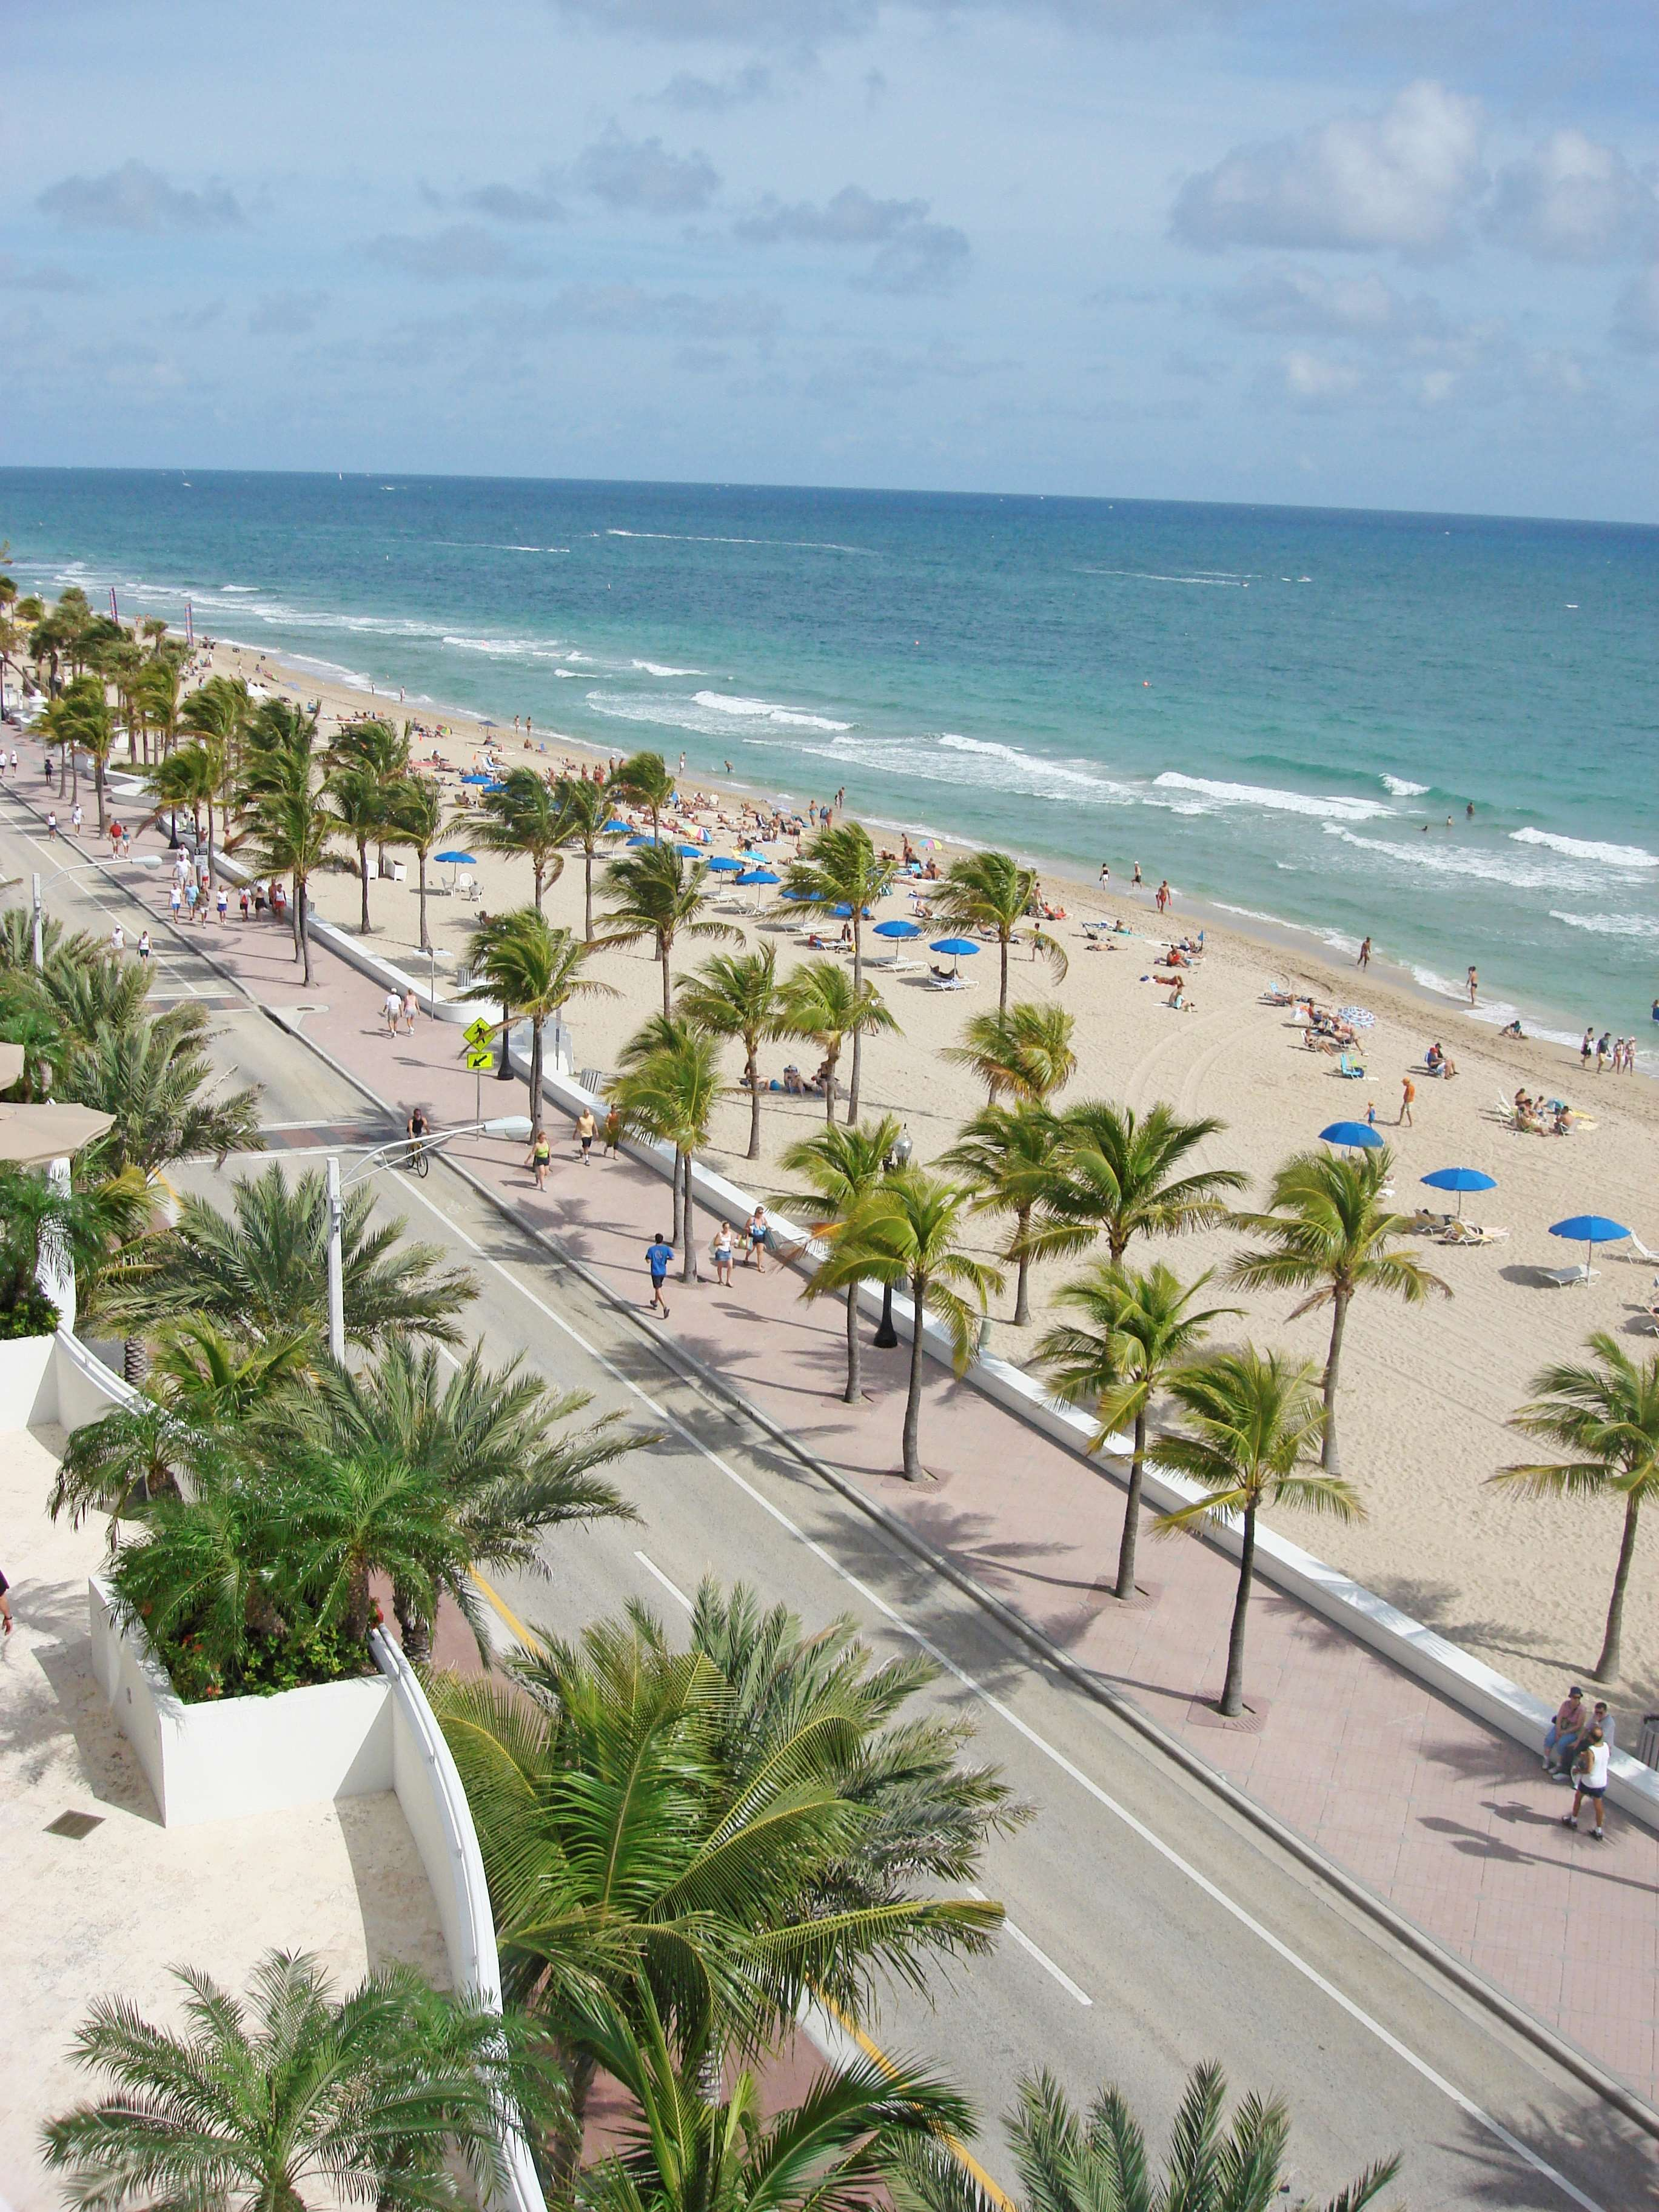 Bahia Mar Fort Lauderdale Beach - a DoubleTree by Hilton Hotel in Fort Lauderdale, FL, photo #6